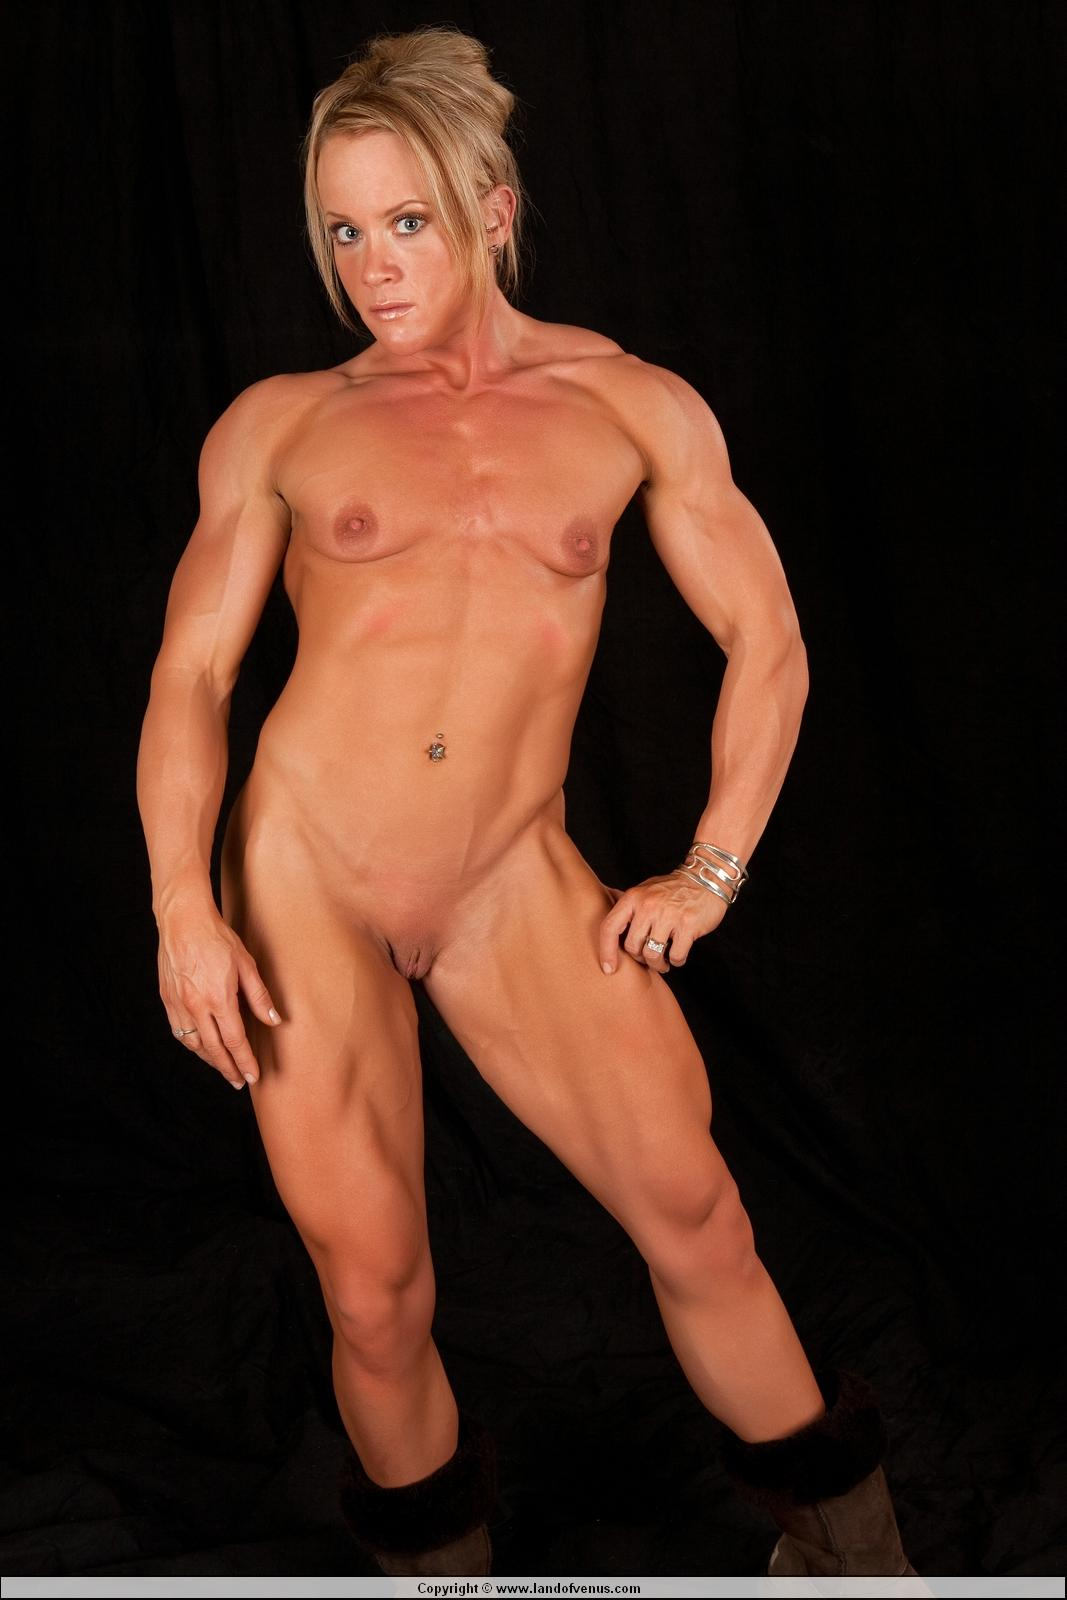 Sexy naked women bodybuilders assured, what